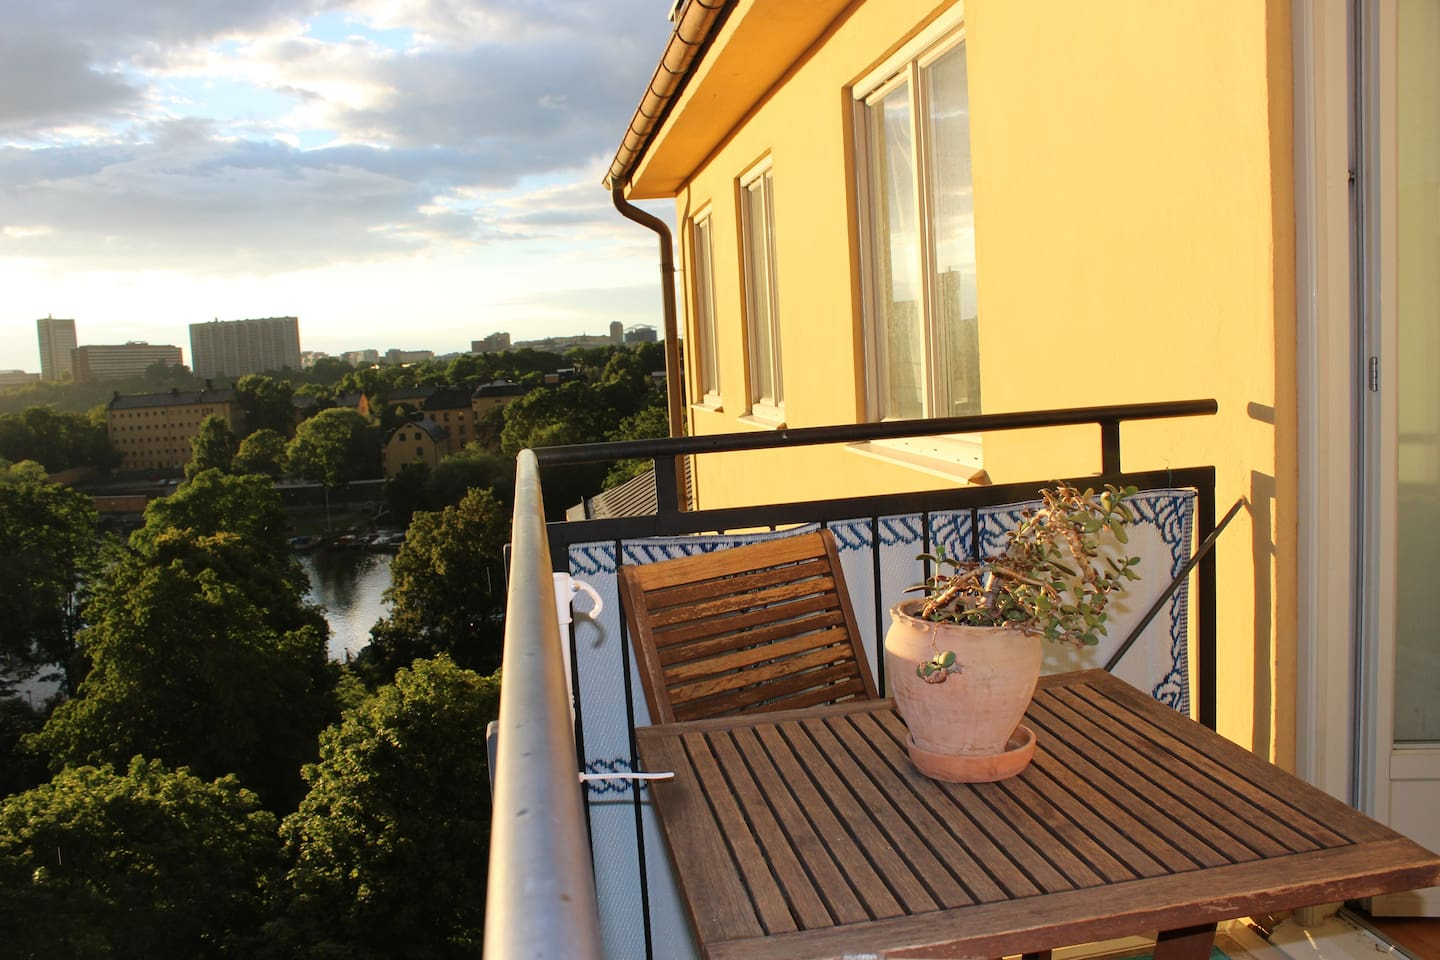 Sunny balcony from noon until sunset overlooking the water.